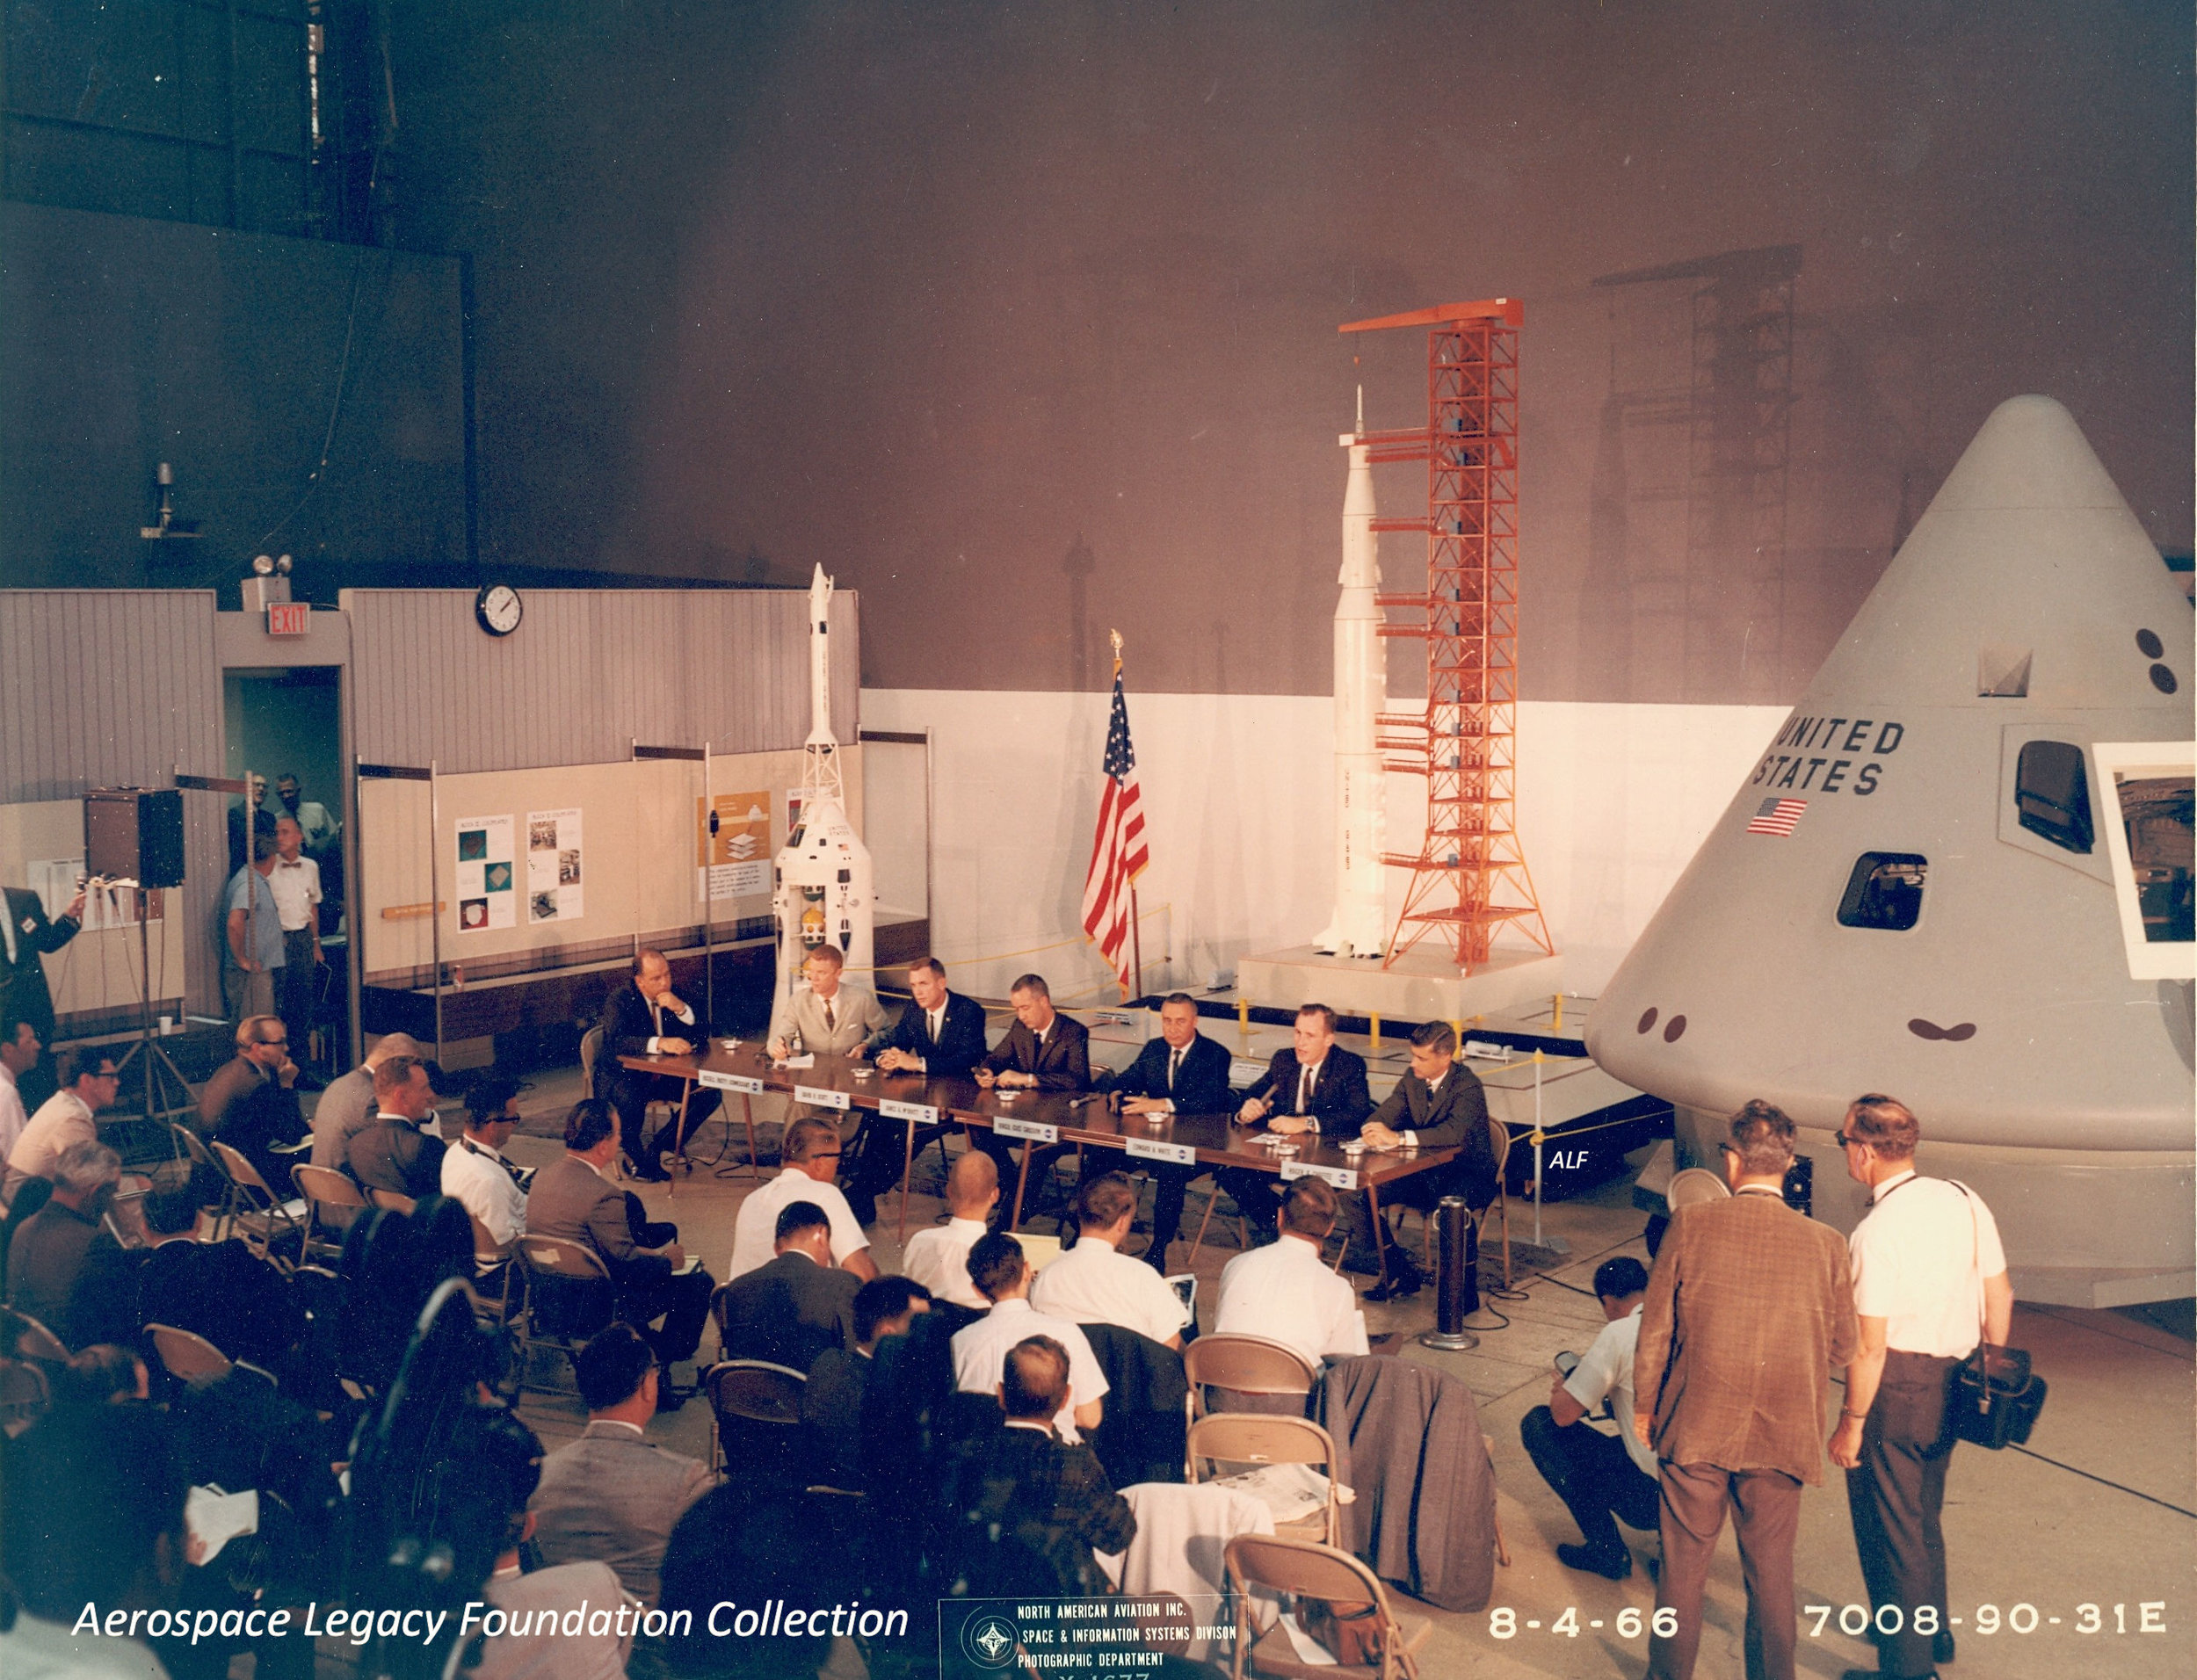 Apollo 1 investigation